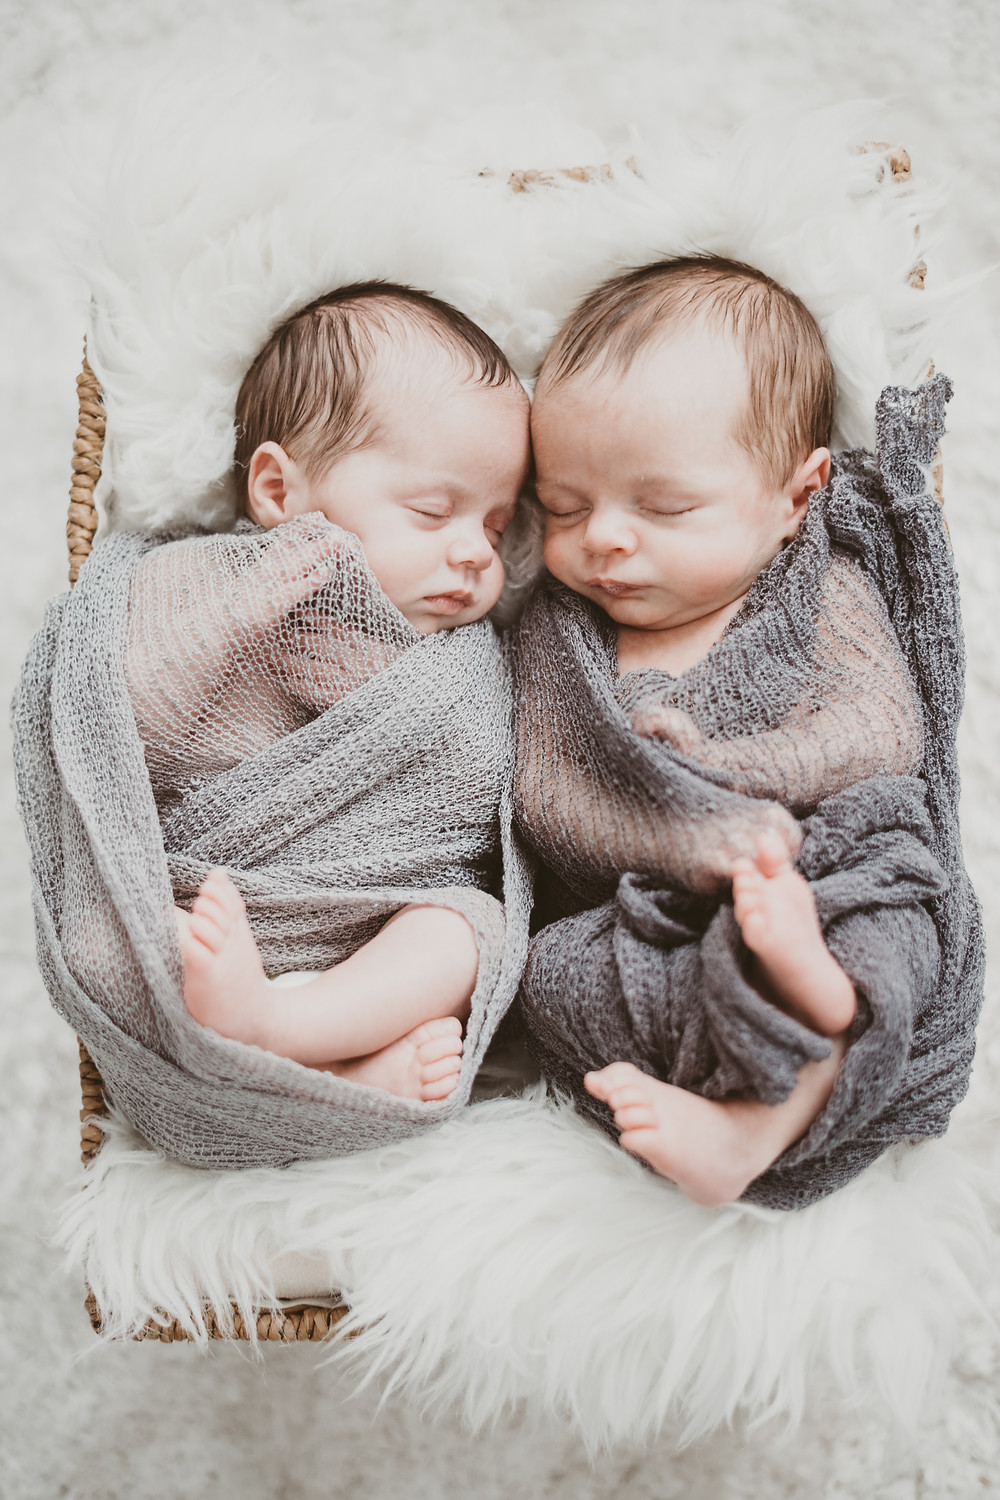 newborn baby twins sleeping soundly together in a basket